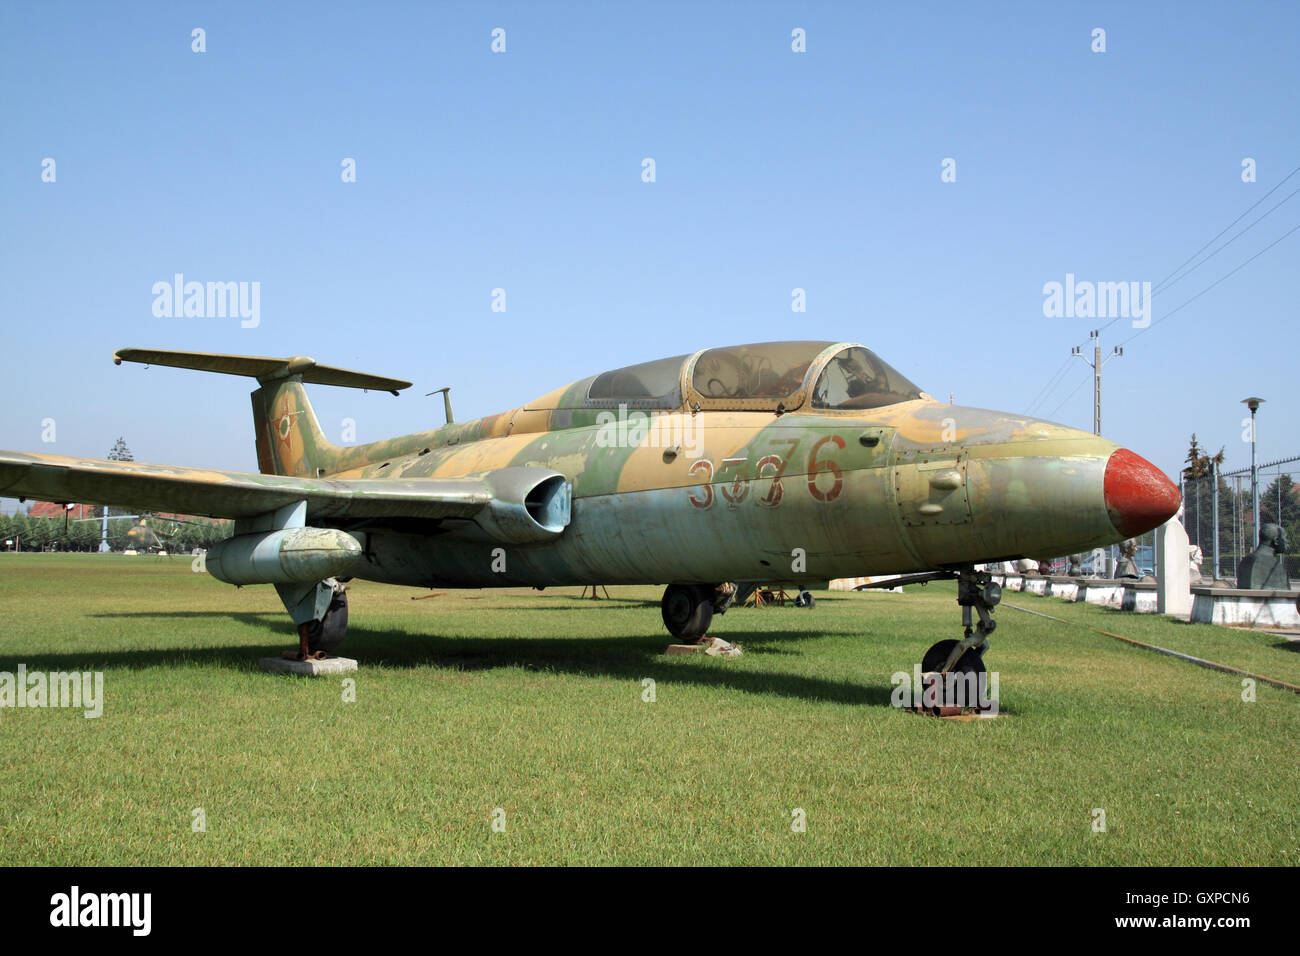 Hungarian Air Force Aero L-29 Delfin trainer jet on display in the Military Technology Park, Kecel, Hungary - Stock Image